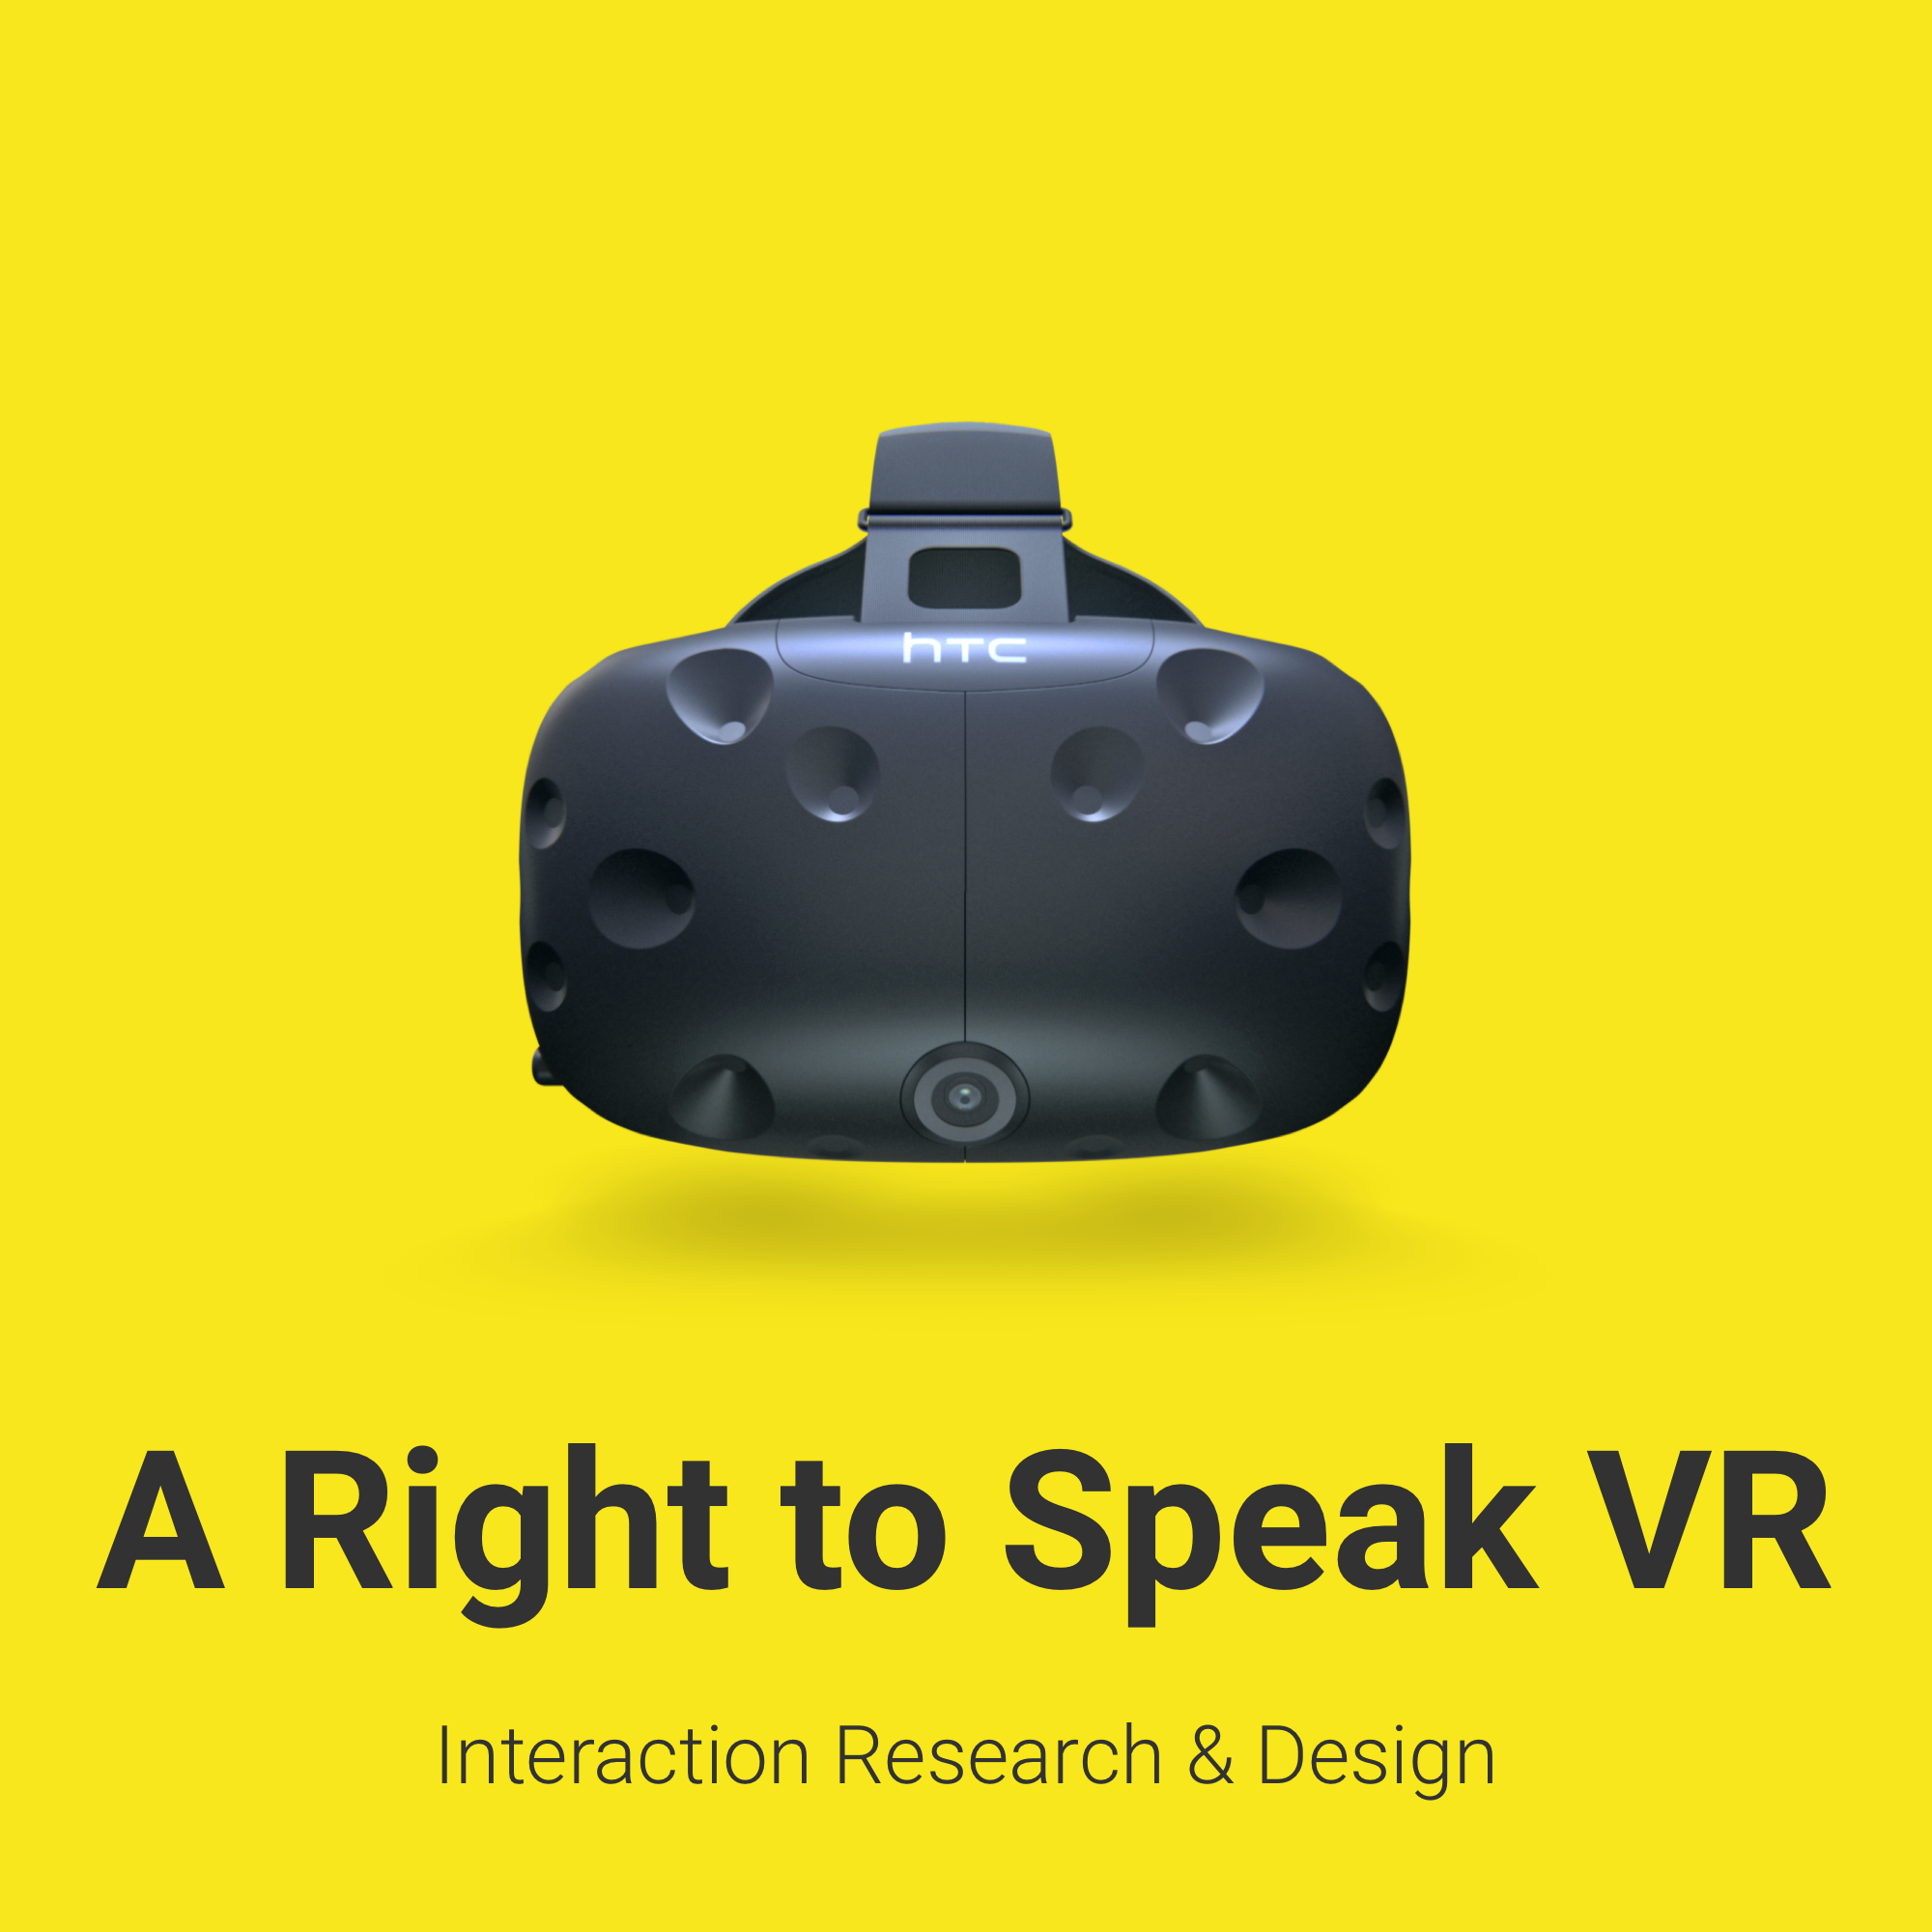 a right to speak Virtual reality interaction research and design - button.png